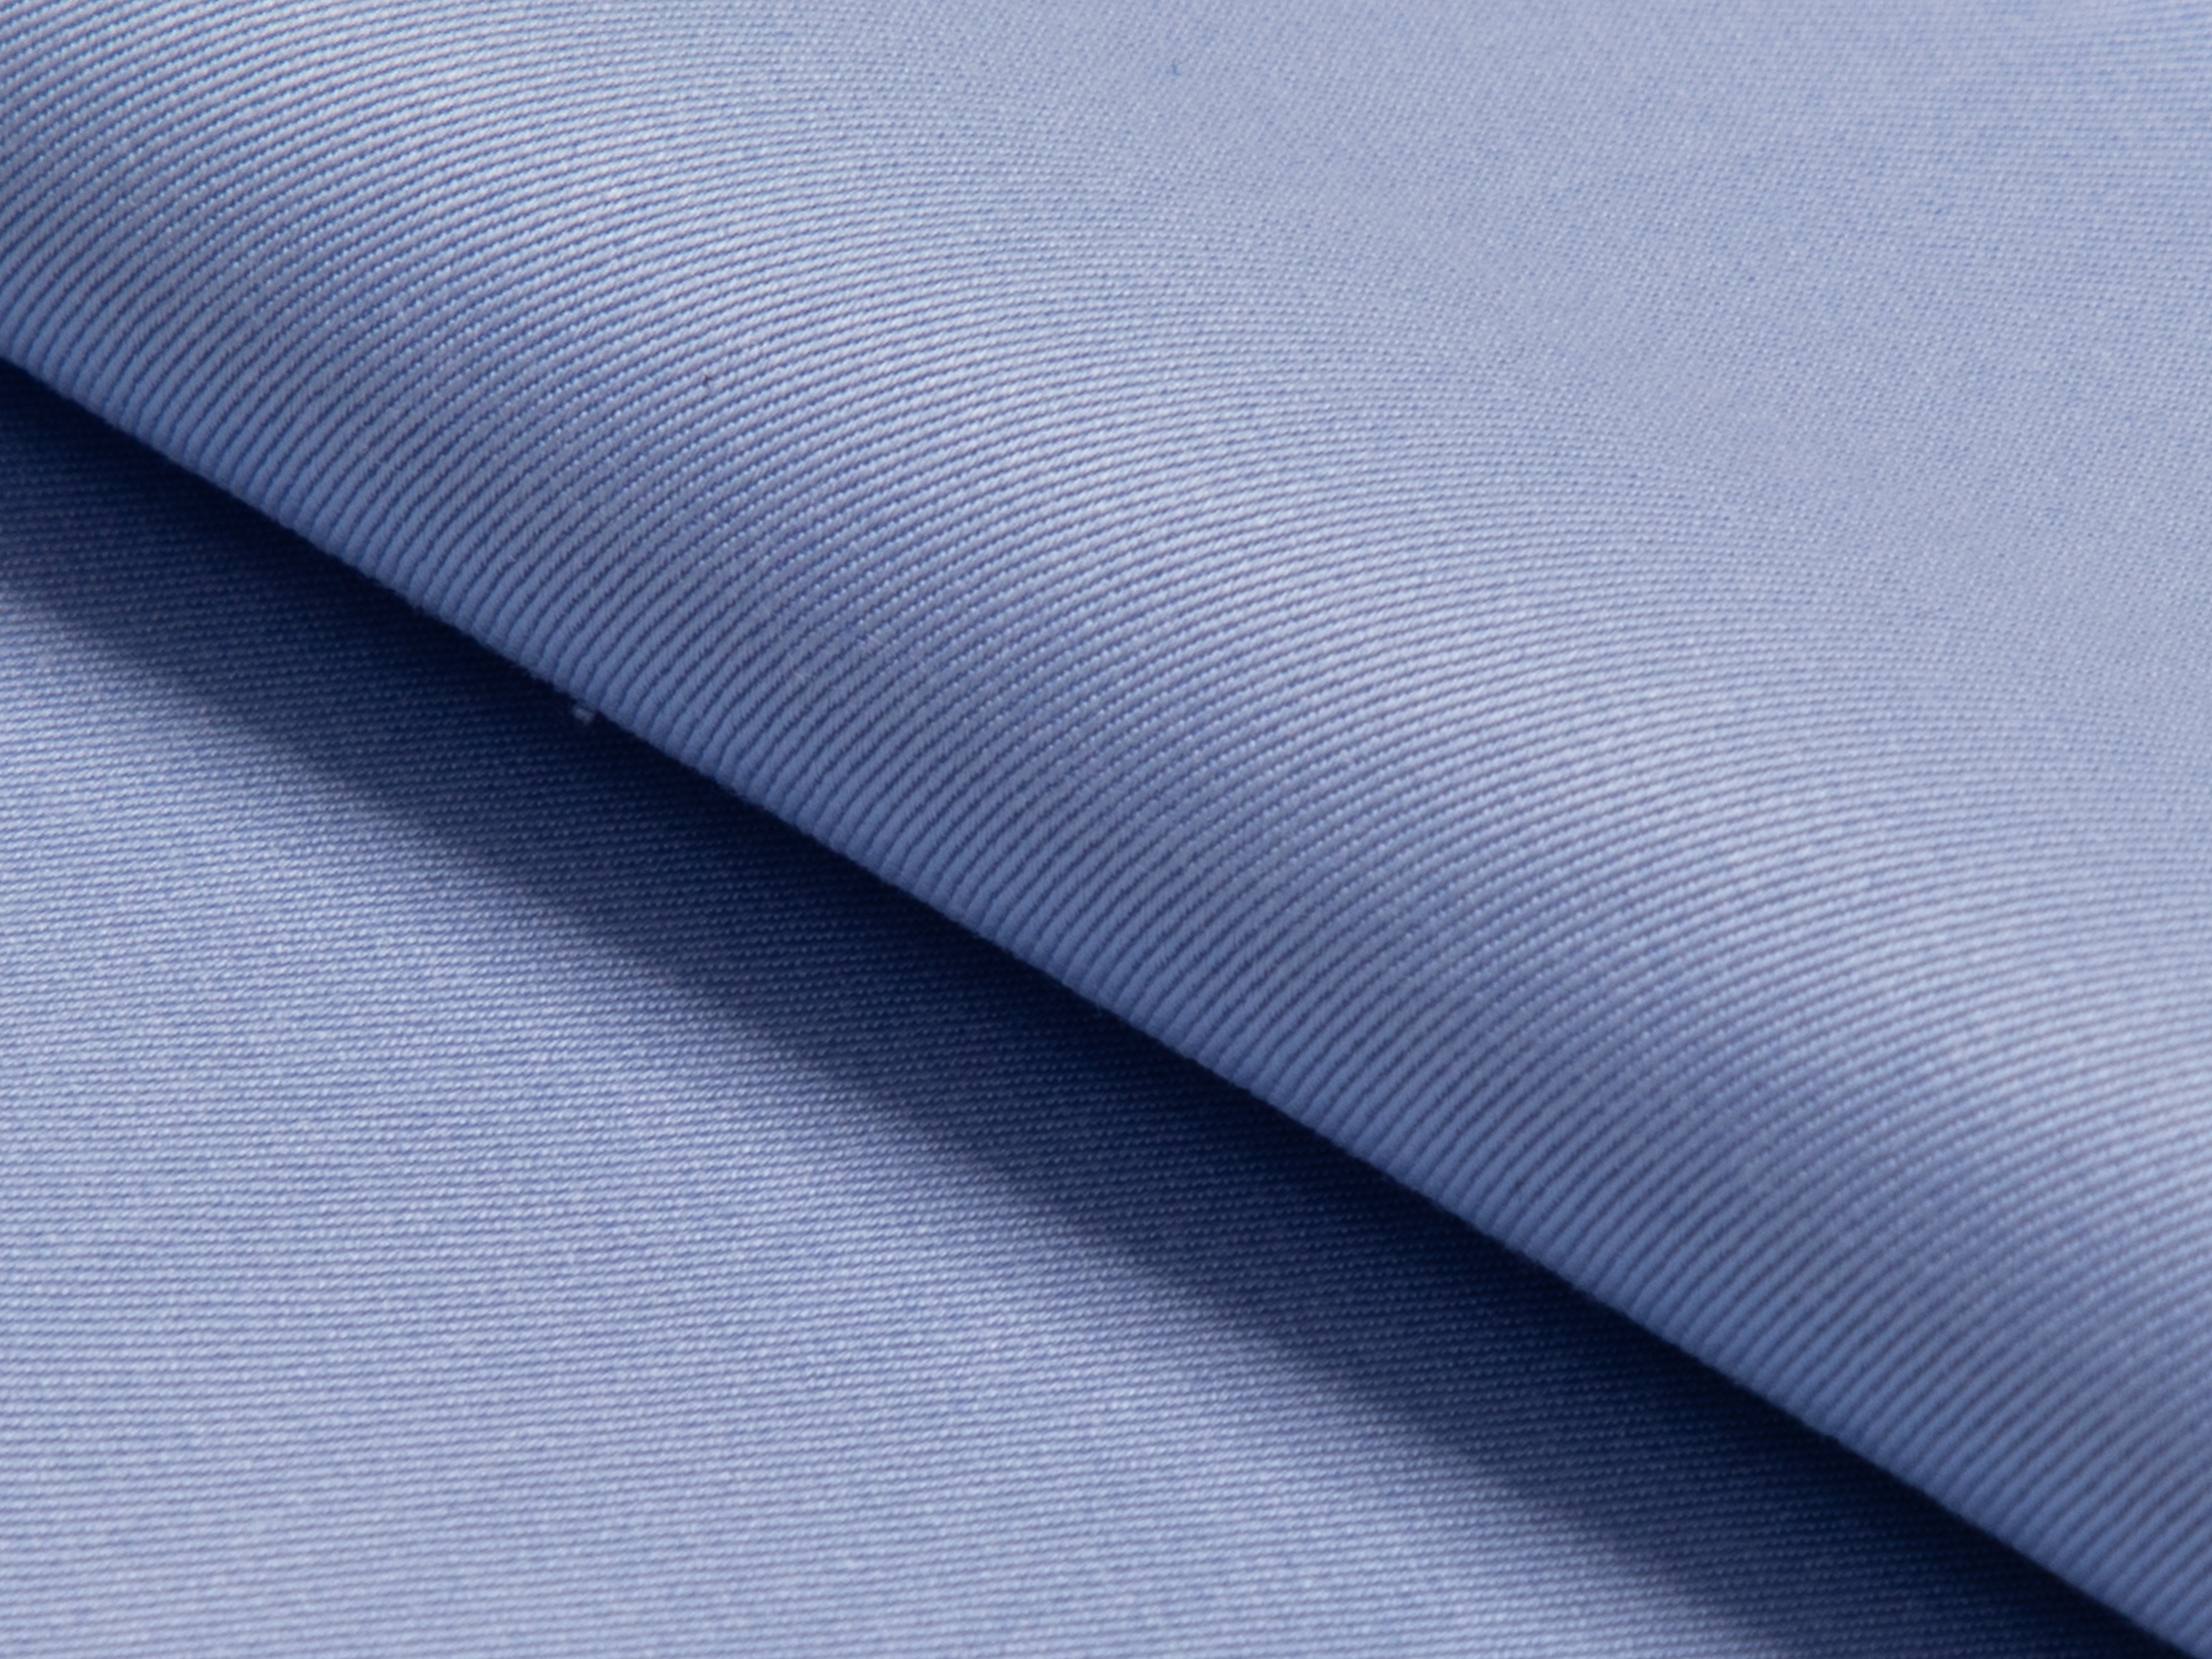 Buy tailor made shirts online - MAYFAIR - Twill Blue